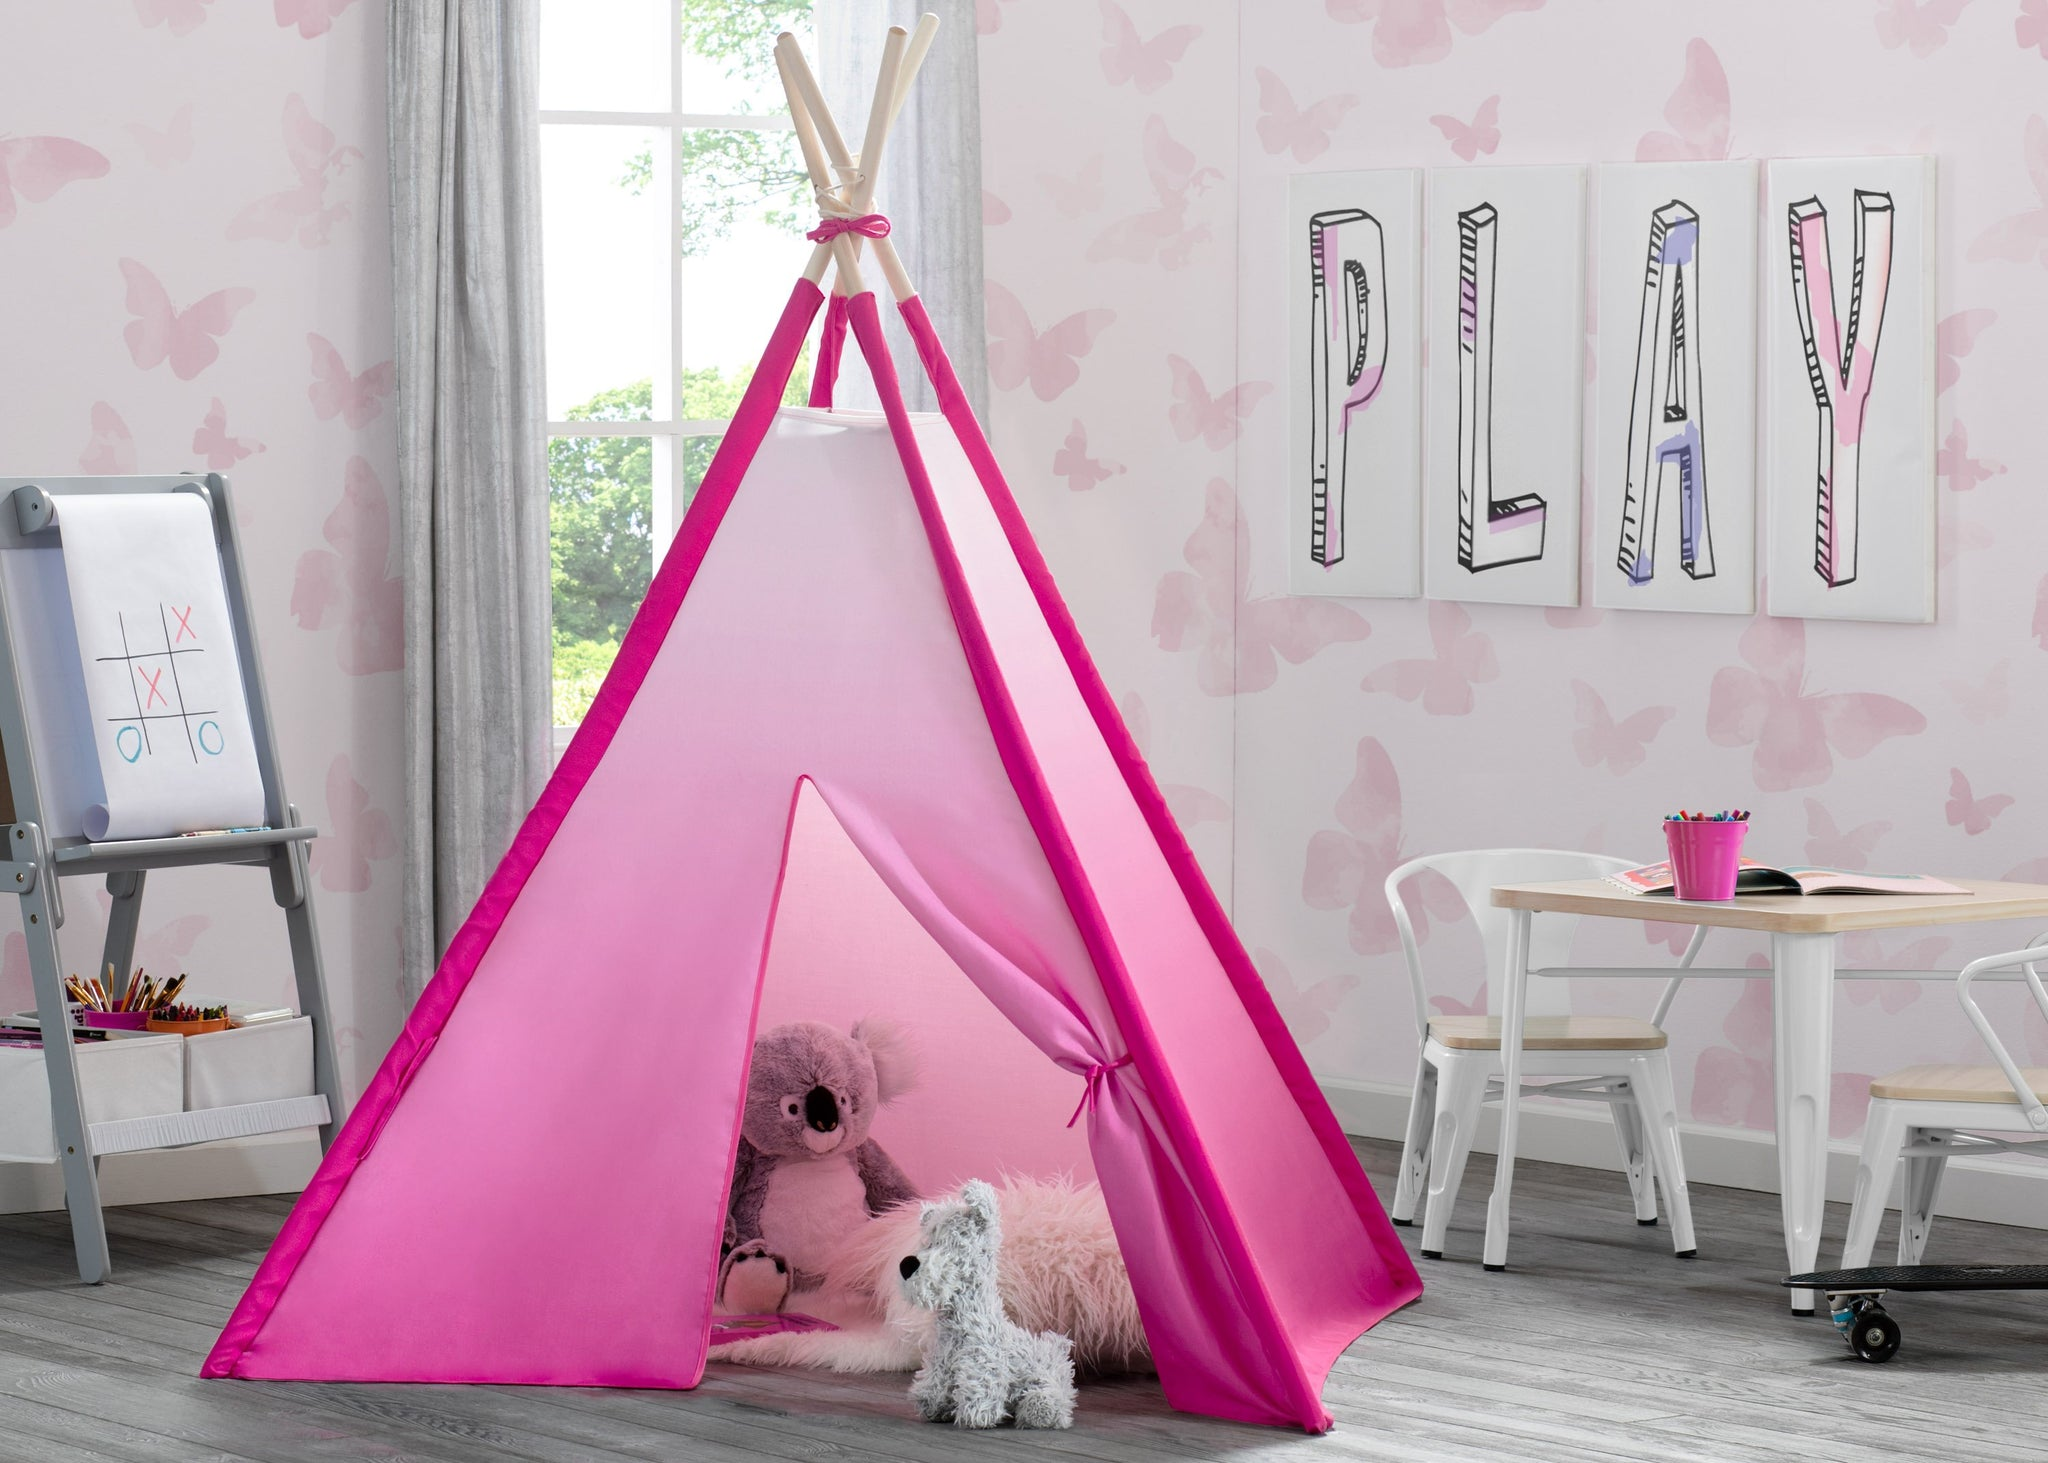 Delta Children Pink Ombre (999) Teepee Play Tent for Kids, Hangtag View